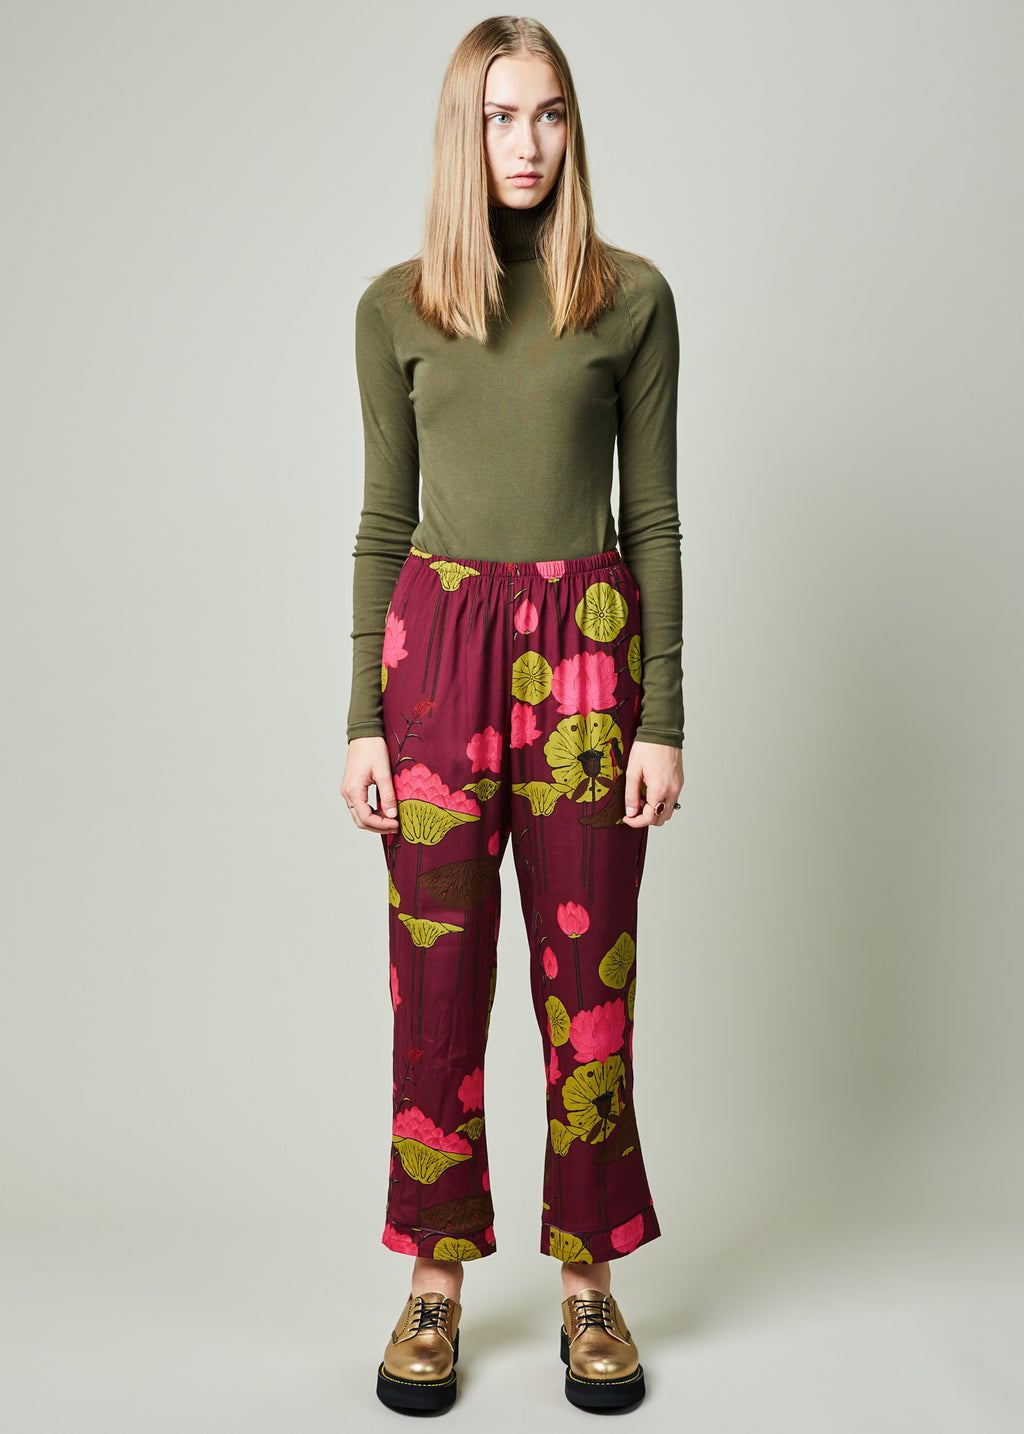 Lotus Flower Pajama Pant